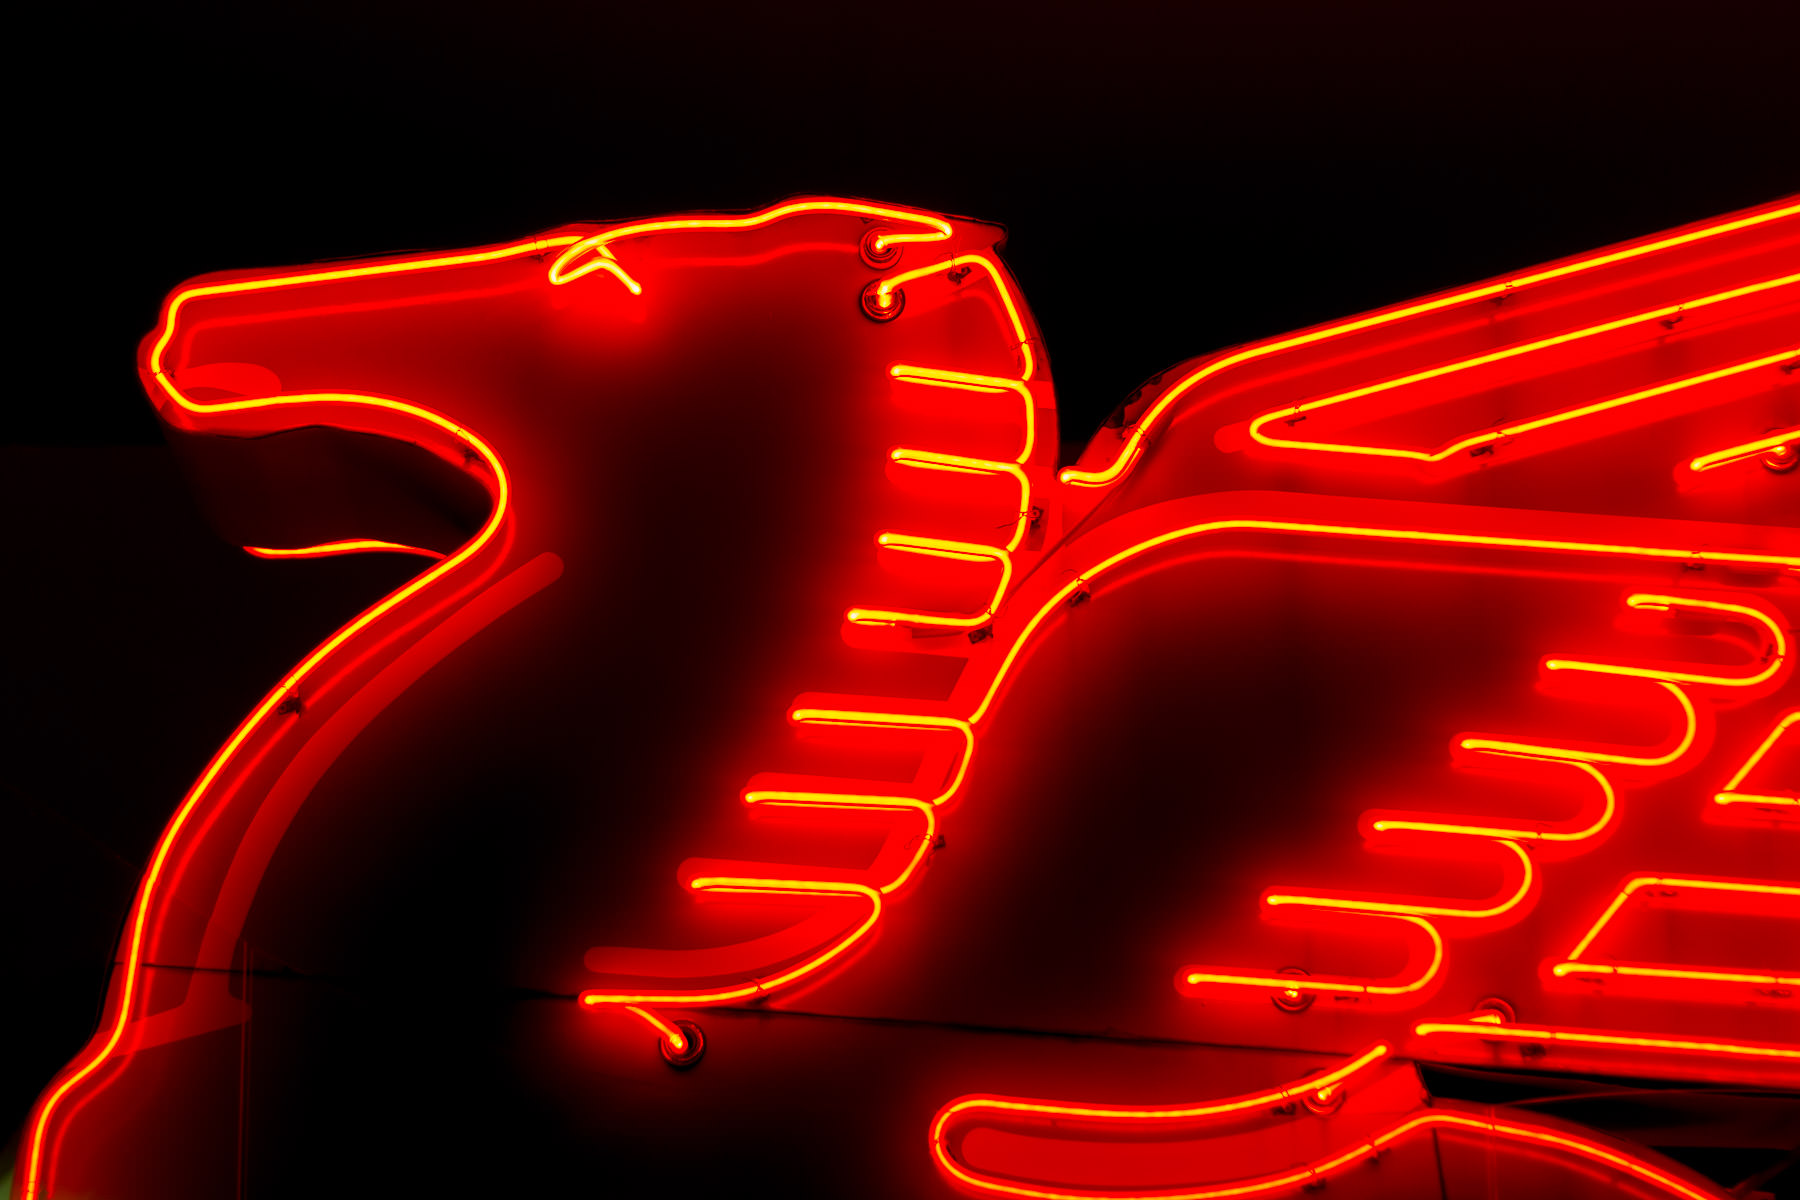 Detail of the 70-year-old, 11-foot-tall neon Pegasus sign that once stood atop Downtown Dallas' Magnolia Petroleum Building. It now alights in the lobby of Dallas' Old Red Museum of Dallas County History and Culture, having been replaced by a reproduction atop the restored Magnolia Building (now a boutique hotel) in 1999.